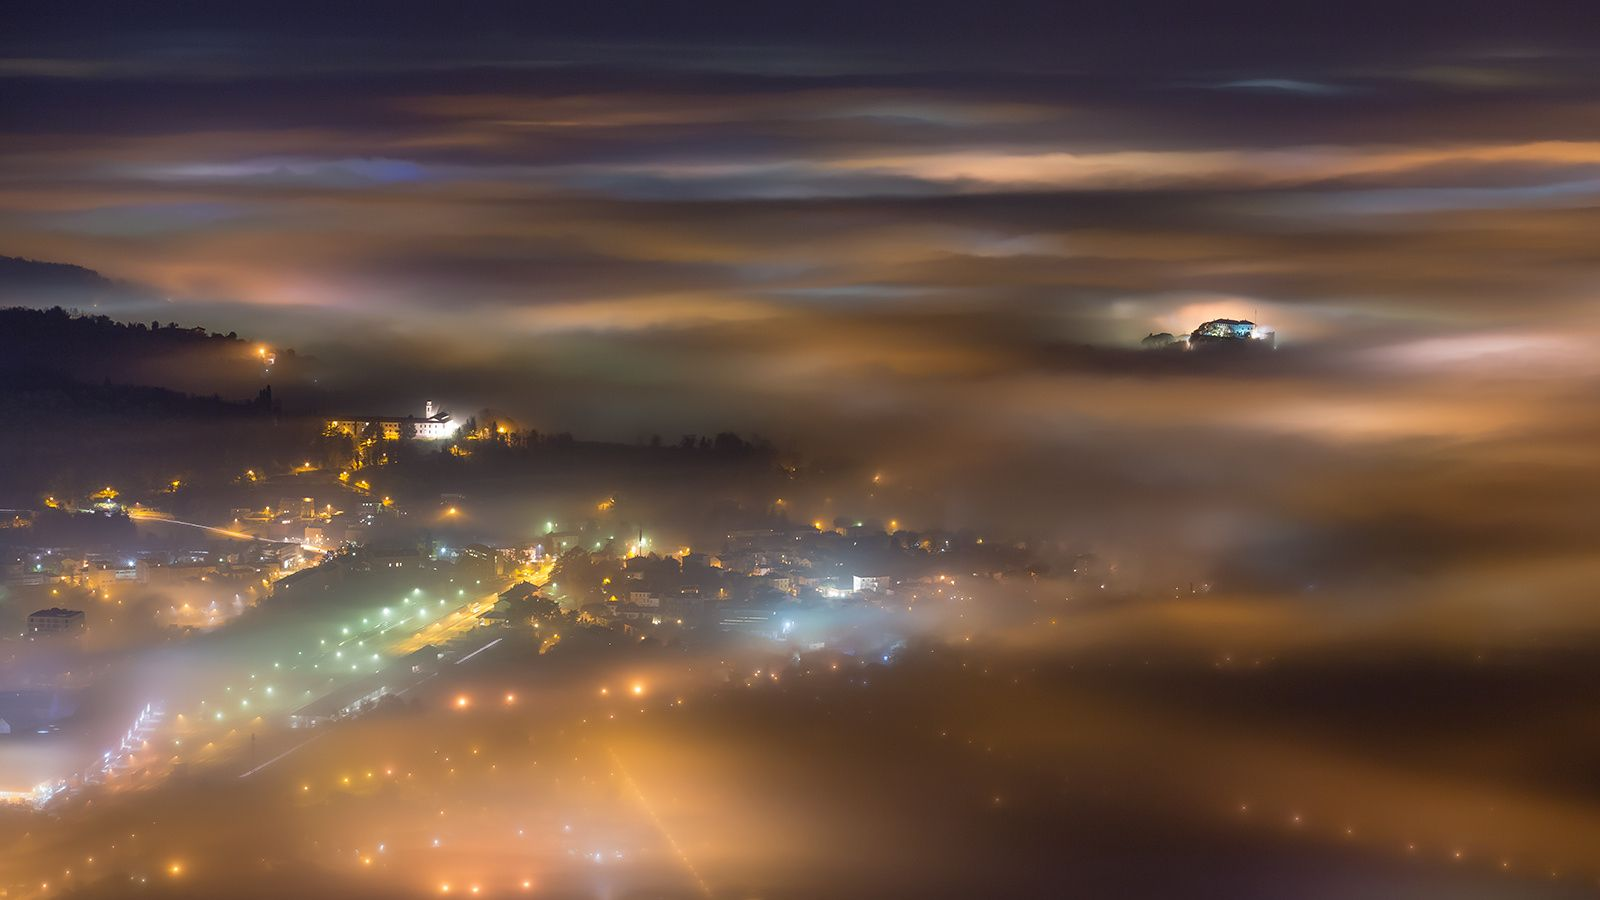 Fog Border - Photo of Nova Gorica (Slovenia) and Gorizia (Italy) was taken from mount Sabotin during inversion when temperatures were inverted reaching -5°C on city level (cca 150m above sea level) and reaching +15°C on mountain level (altitude cca 600m above sea level).